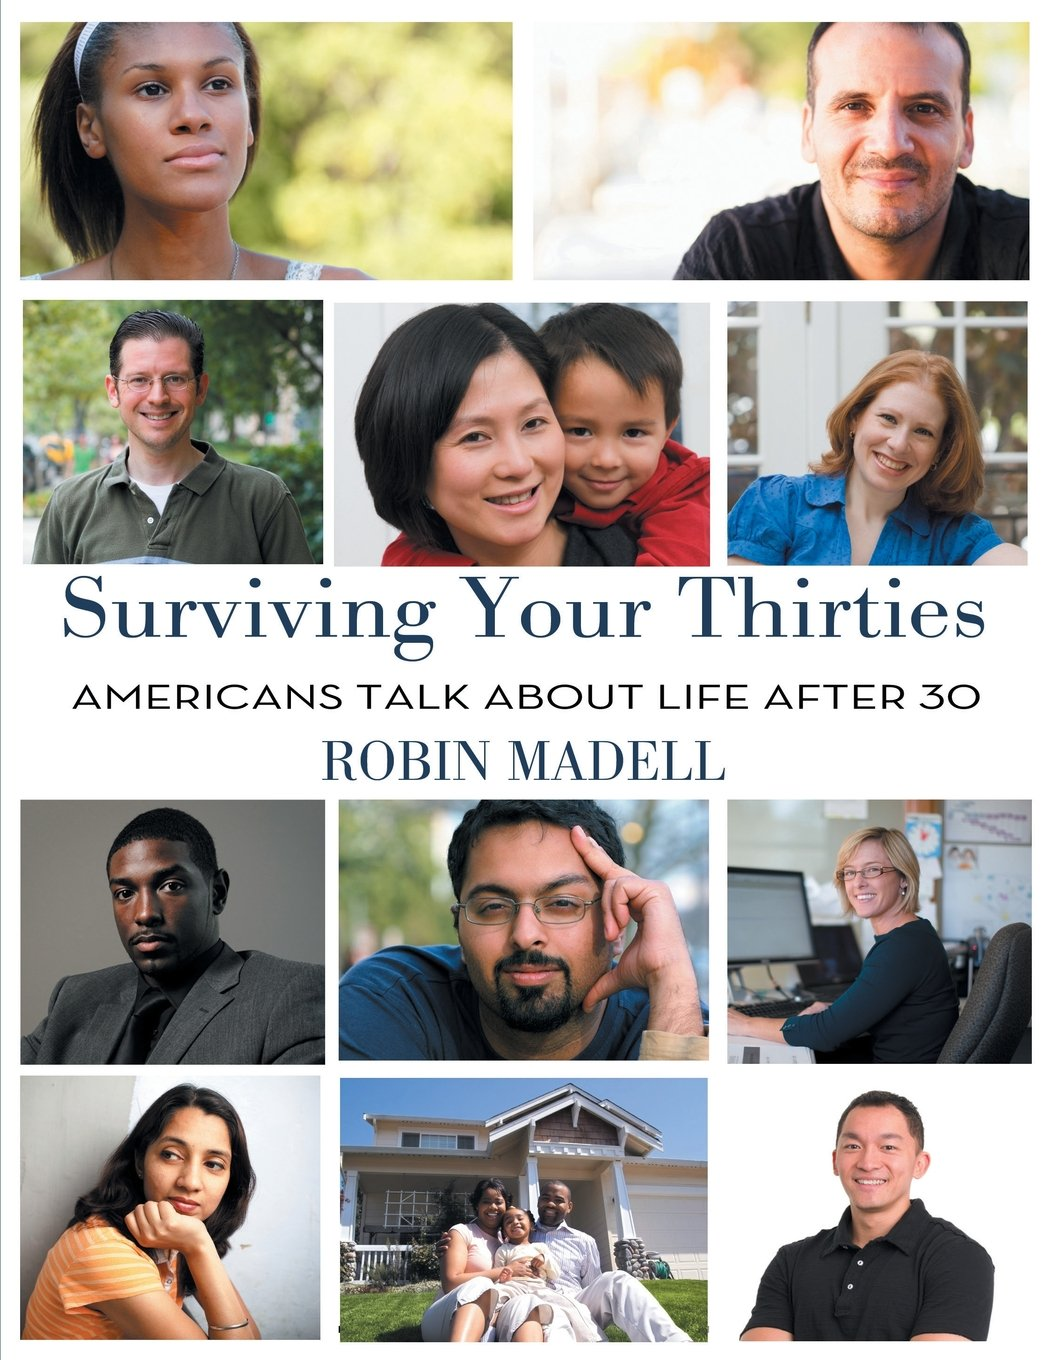 Surviving Your Thirties: Americans Talk about Life After 30 PDF